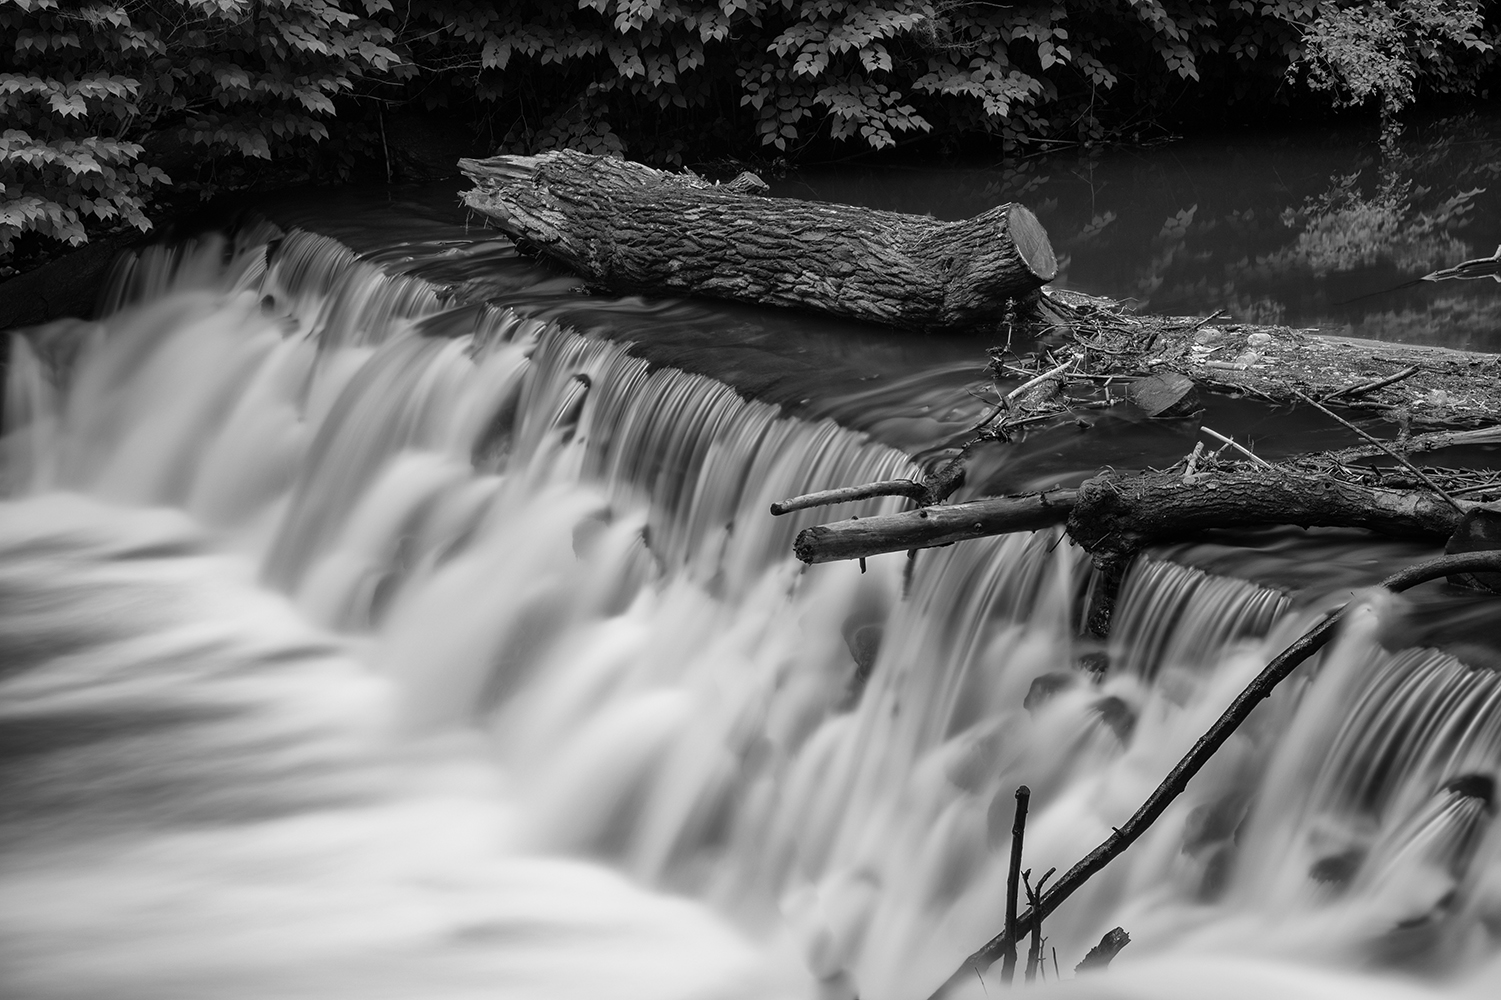 I took this image while on a Photowalk at the NY Botanical Gardens with the crew from B&H -- with help from Gabe Biederman -- my first image taken with a Neutral Density Filter.